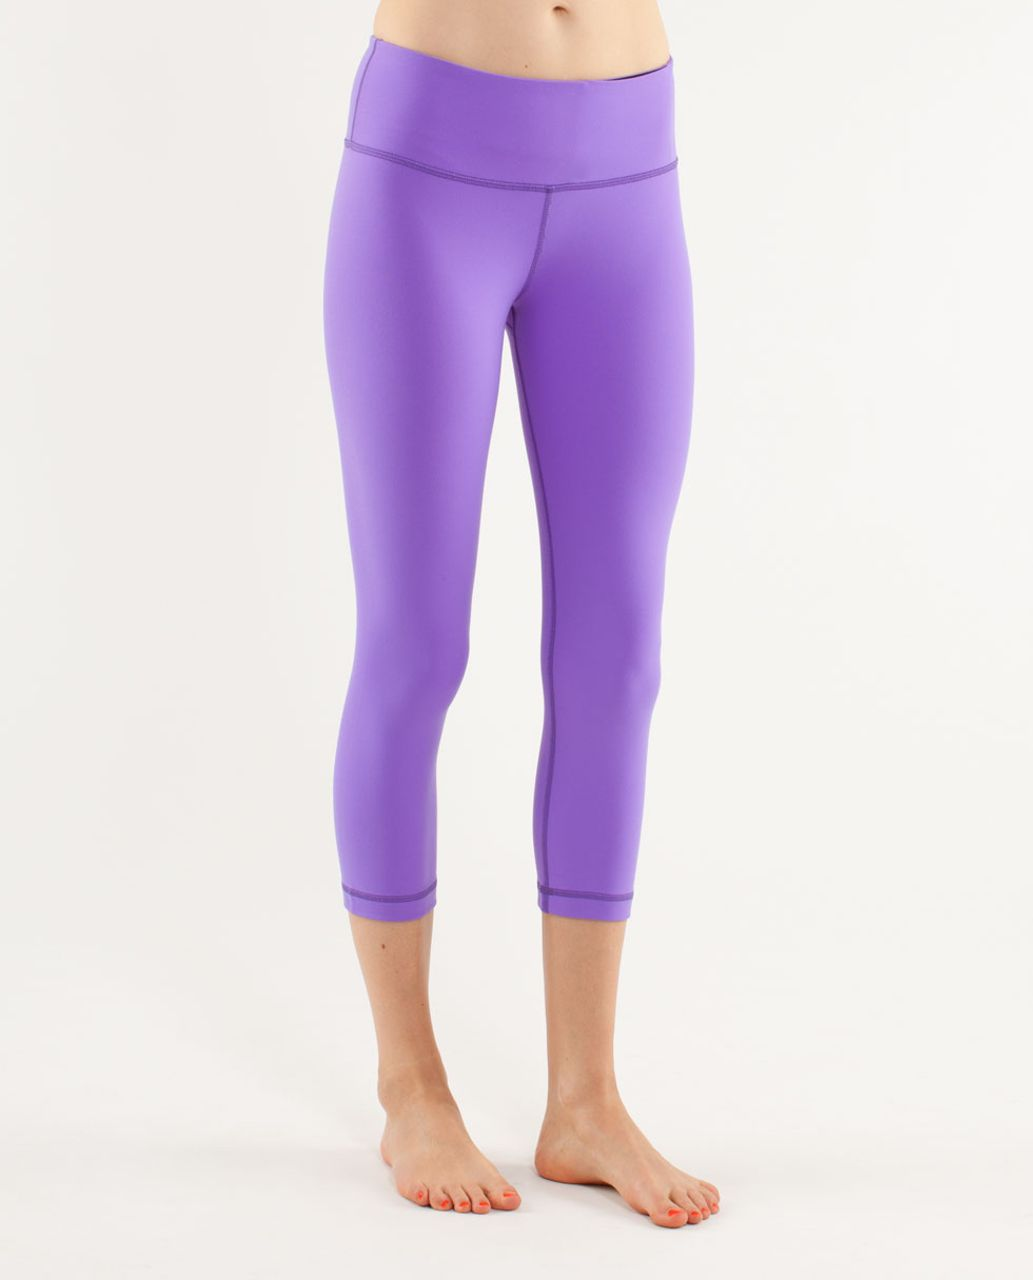 Lululemon Wunder Under Crop - Power Purple (First Release)